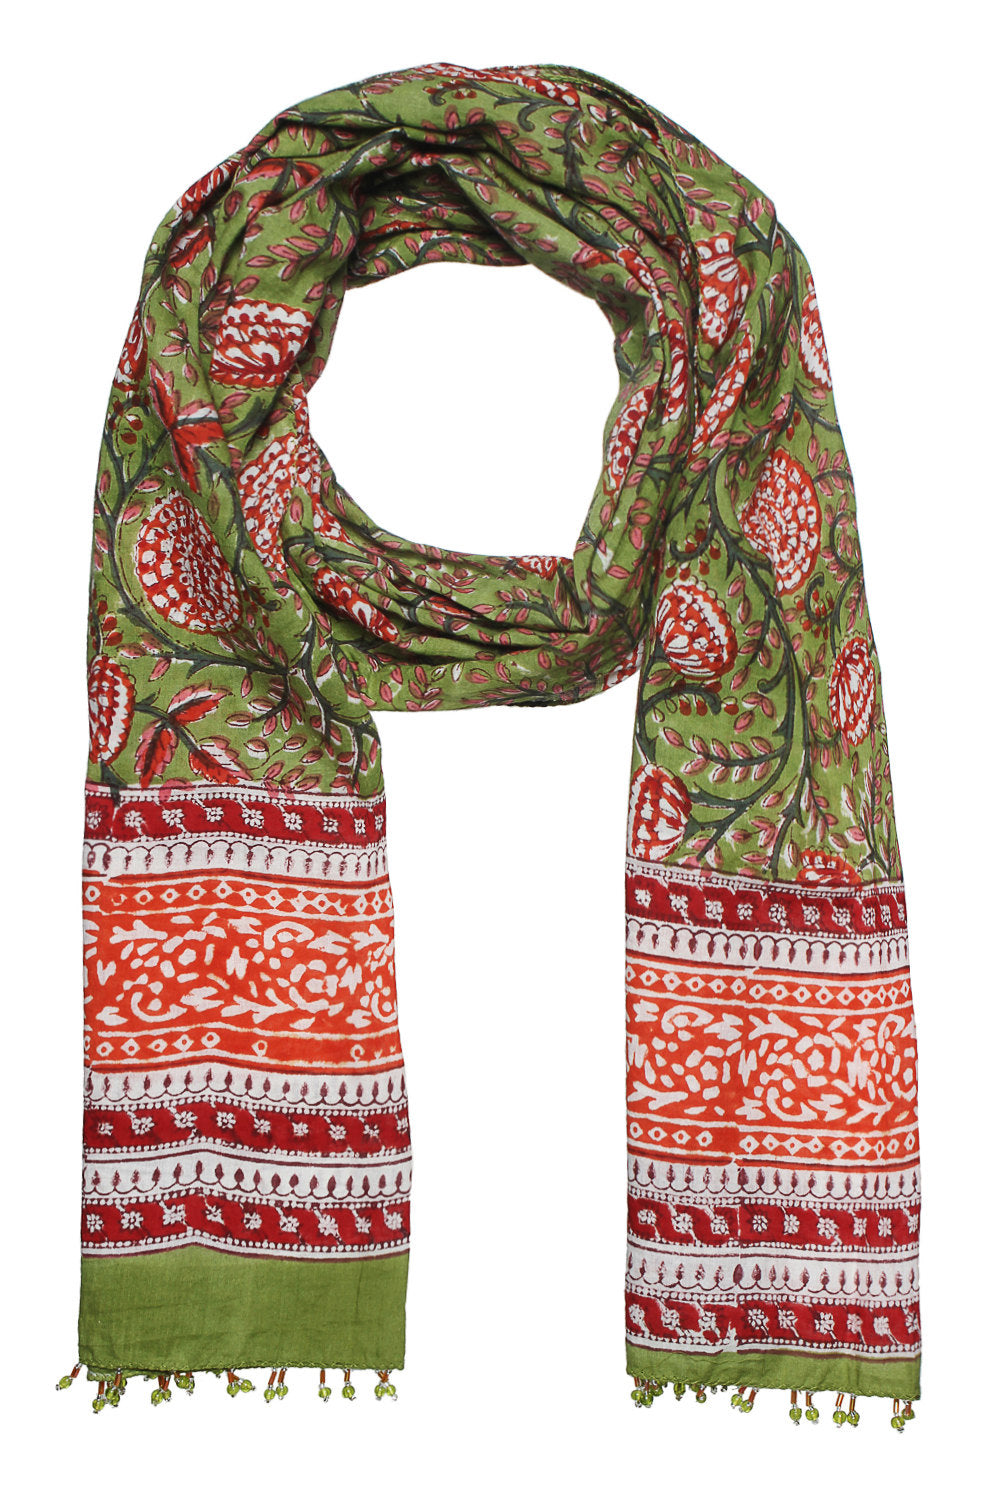 Hand block printed women scarf in vibrant green and sunset orange colour with beads border